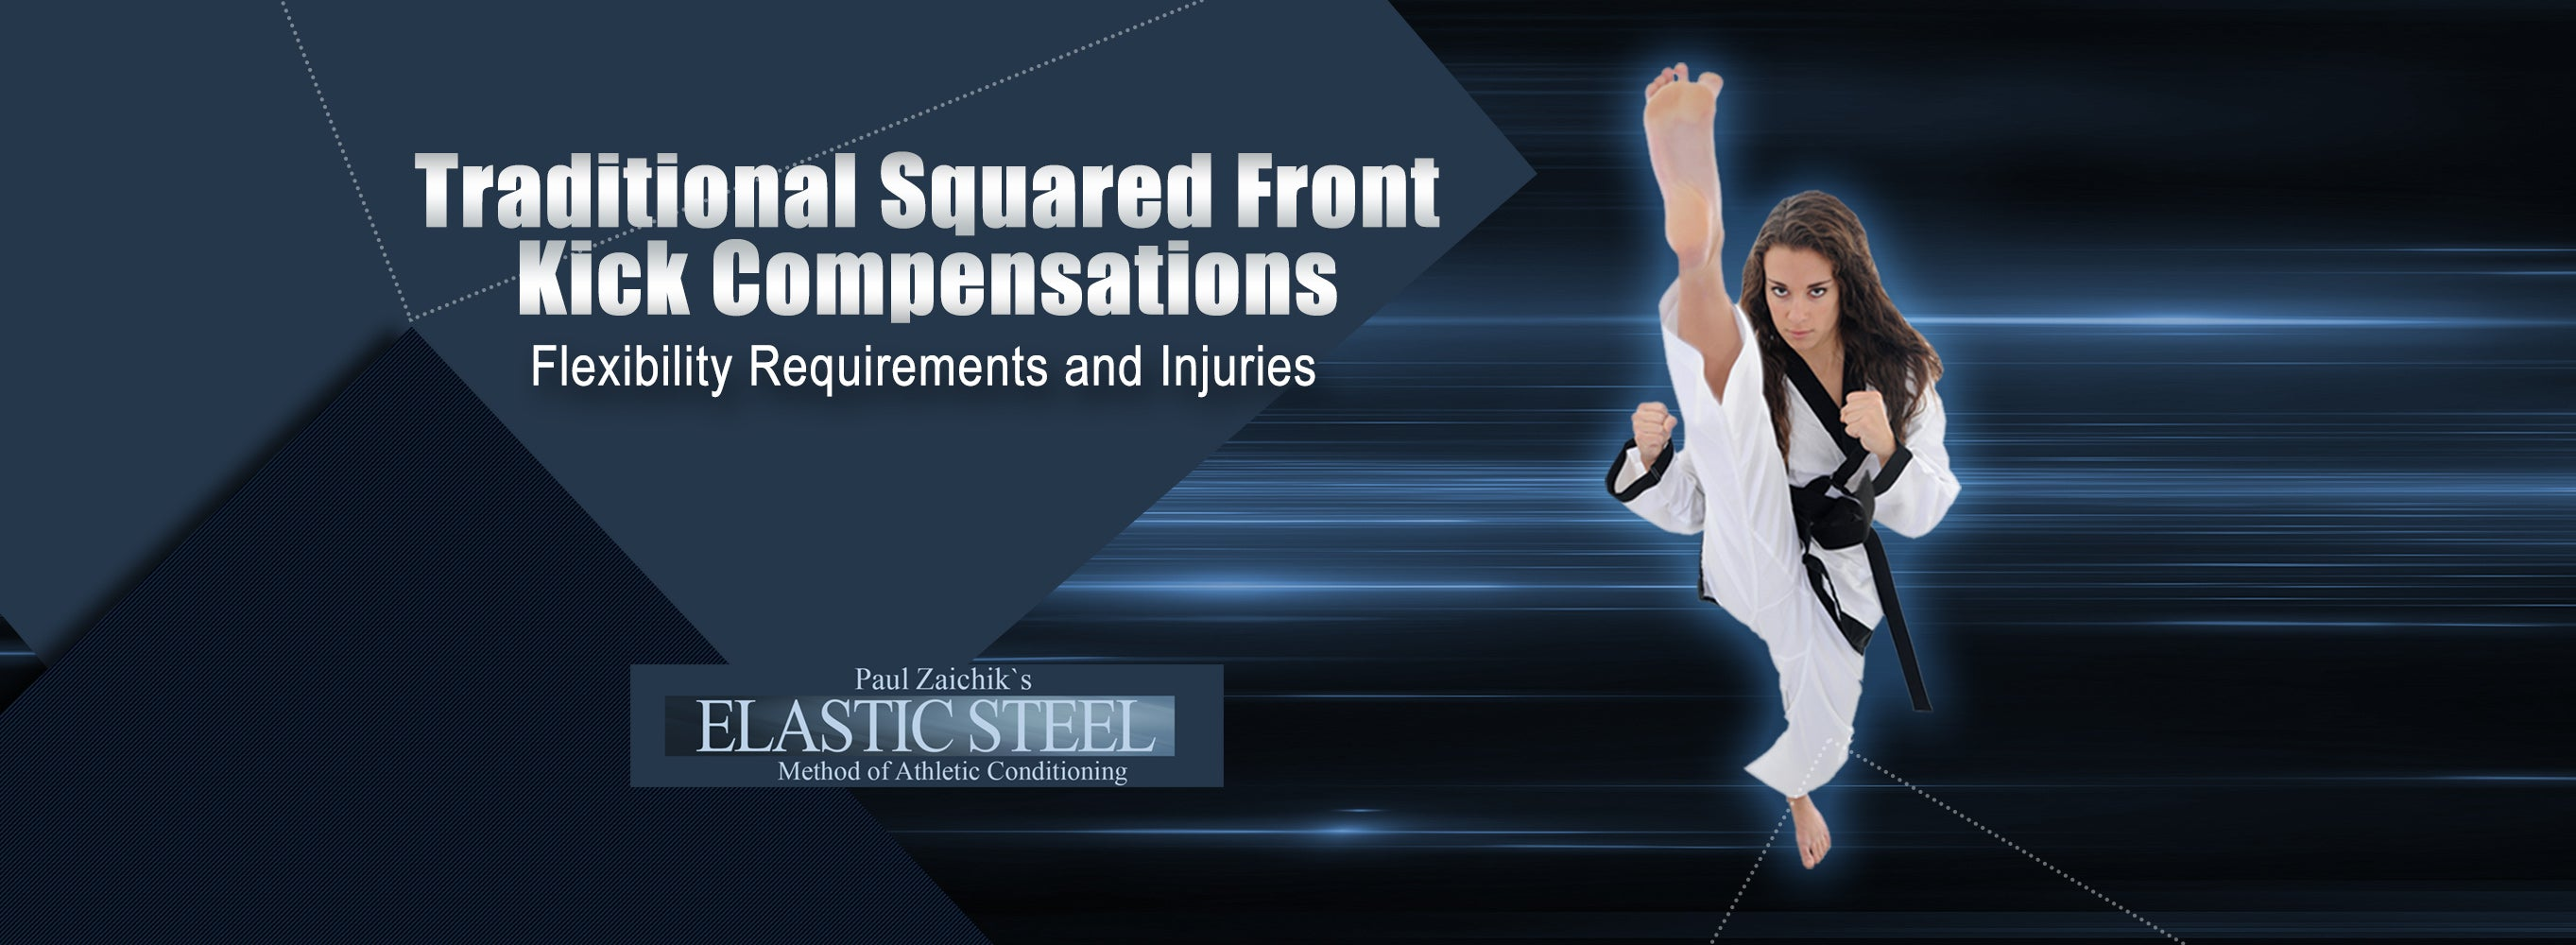 Traditional Squared Front Kick Compensations, Flexibility Requirements and Injuries.